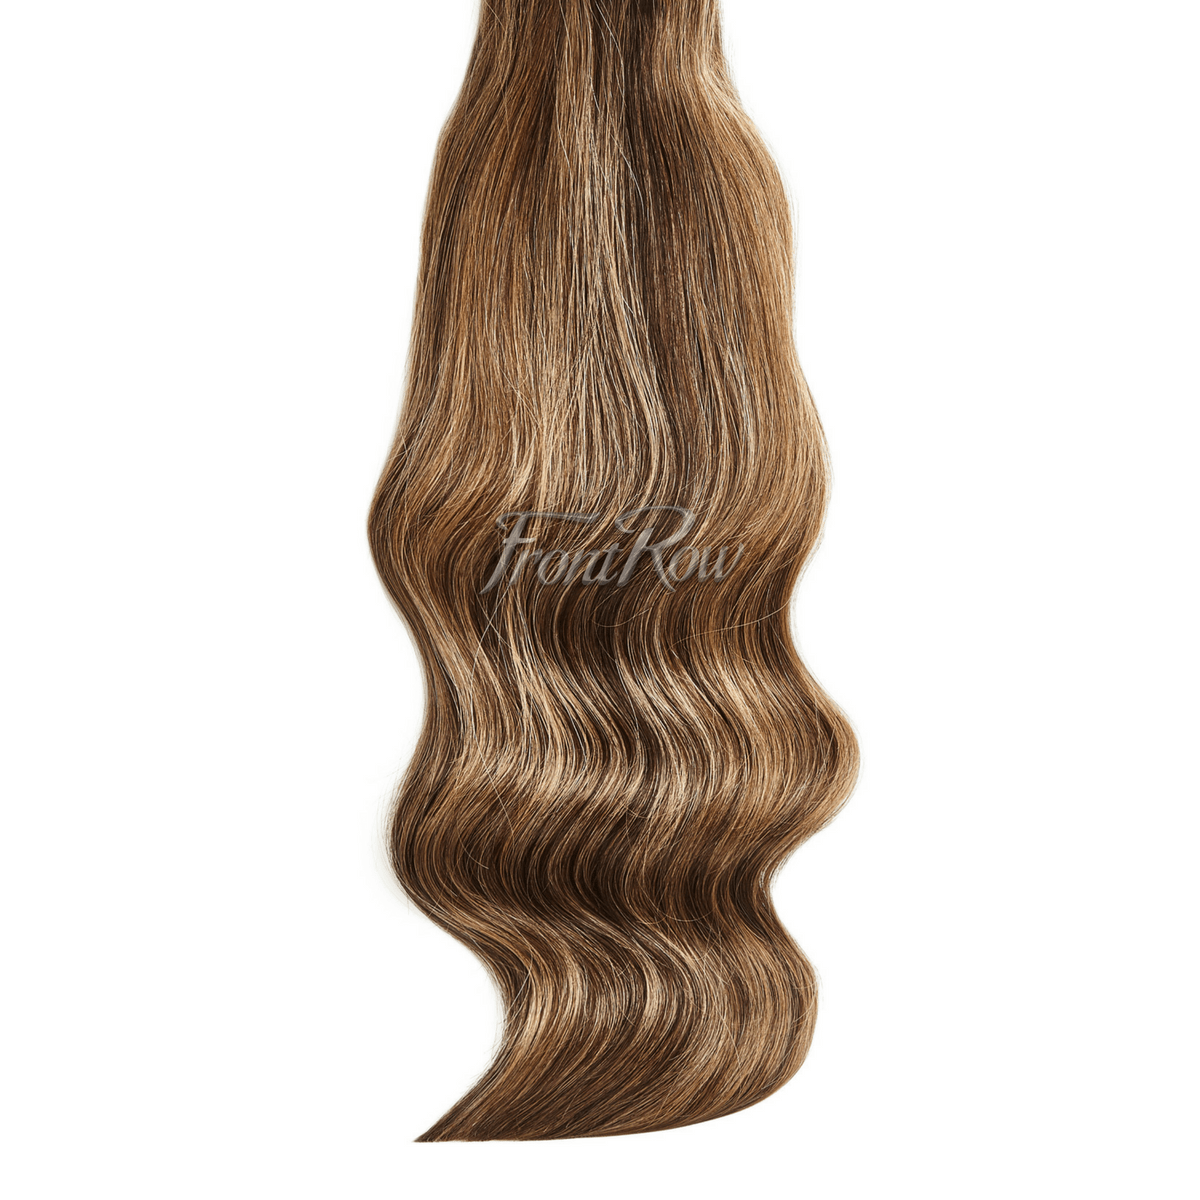 Oh My Starling 20inch Highlighted Clip-in Hair Extensions